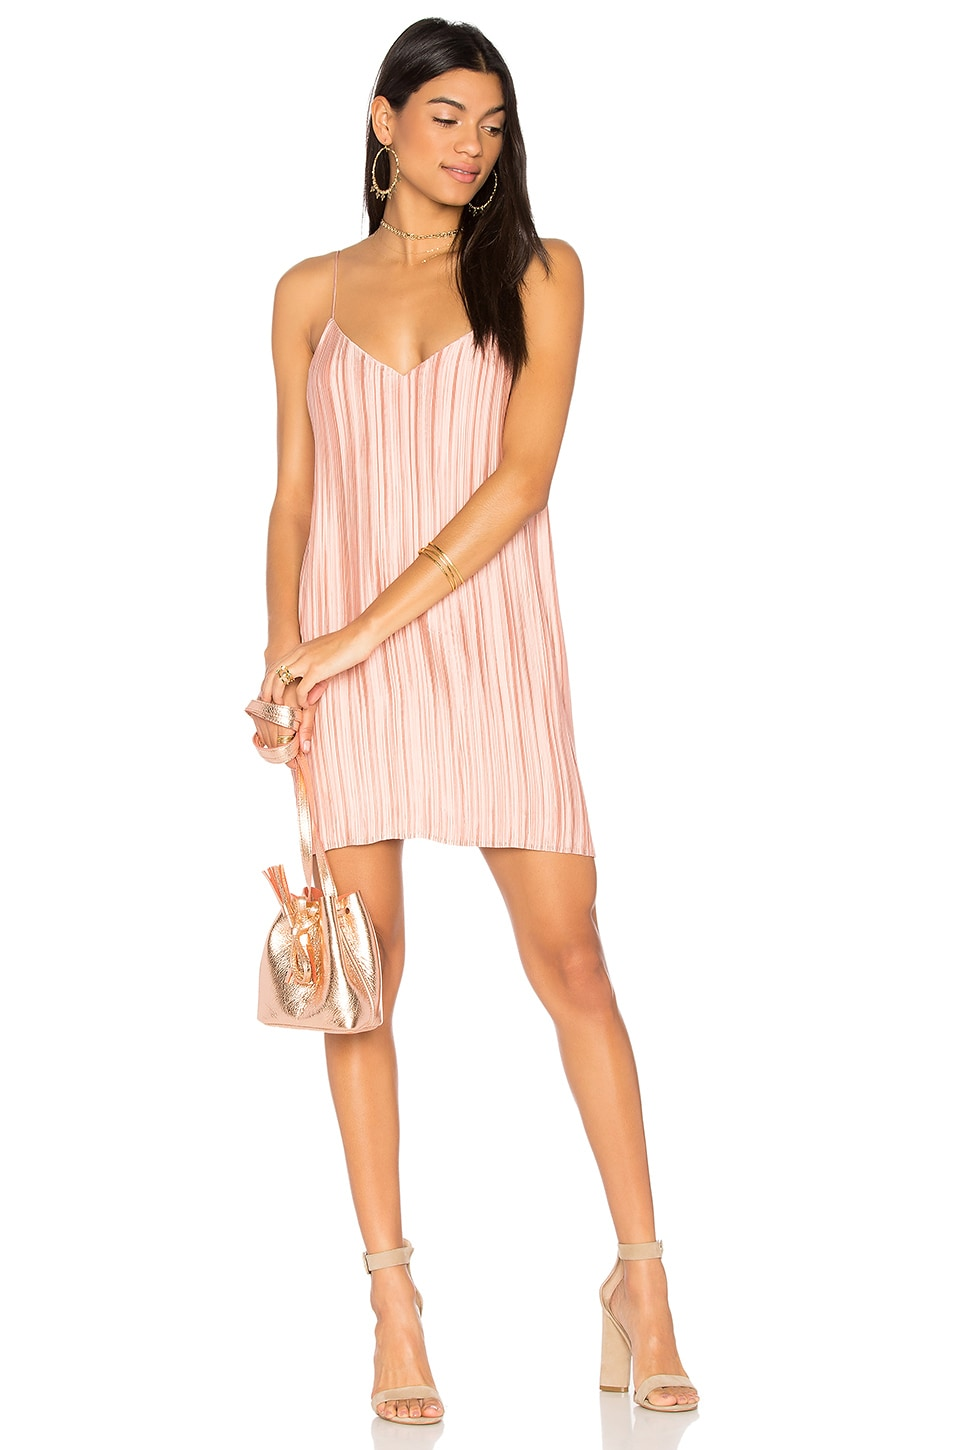 Primavera Mini Dress by THE JETSET DIARIES